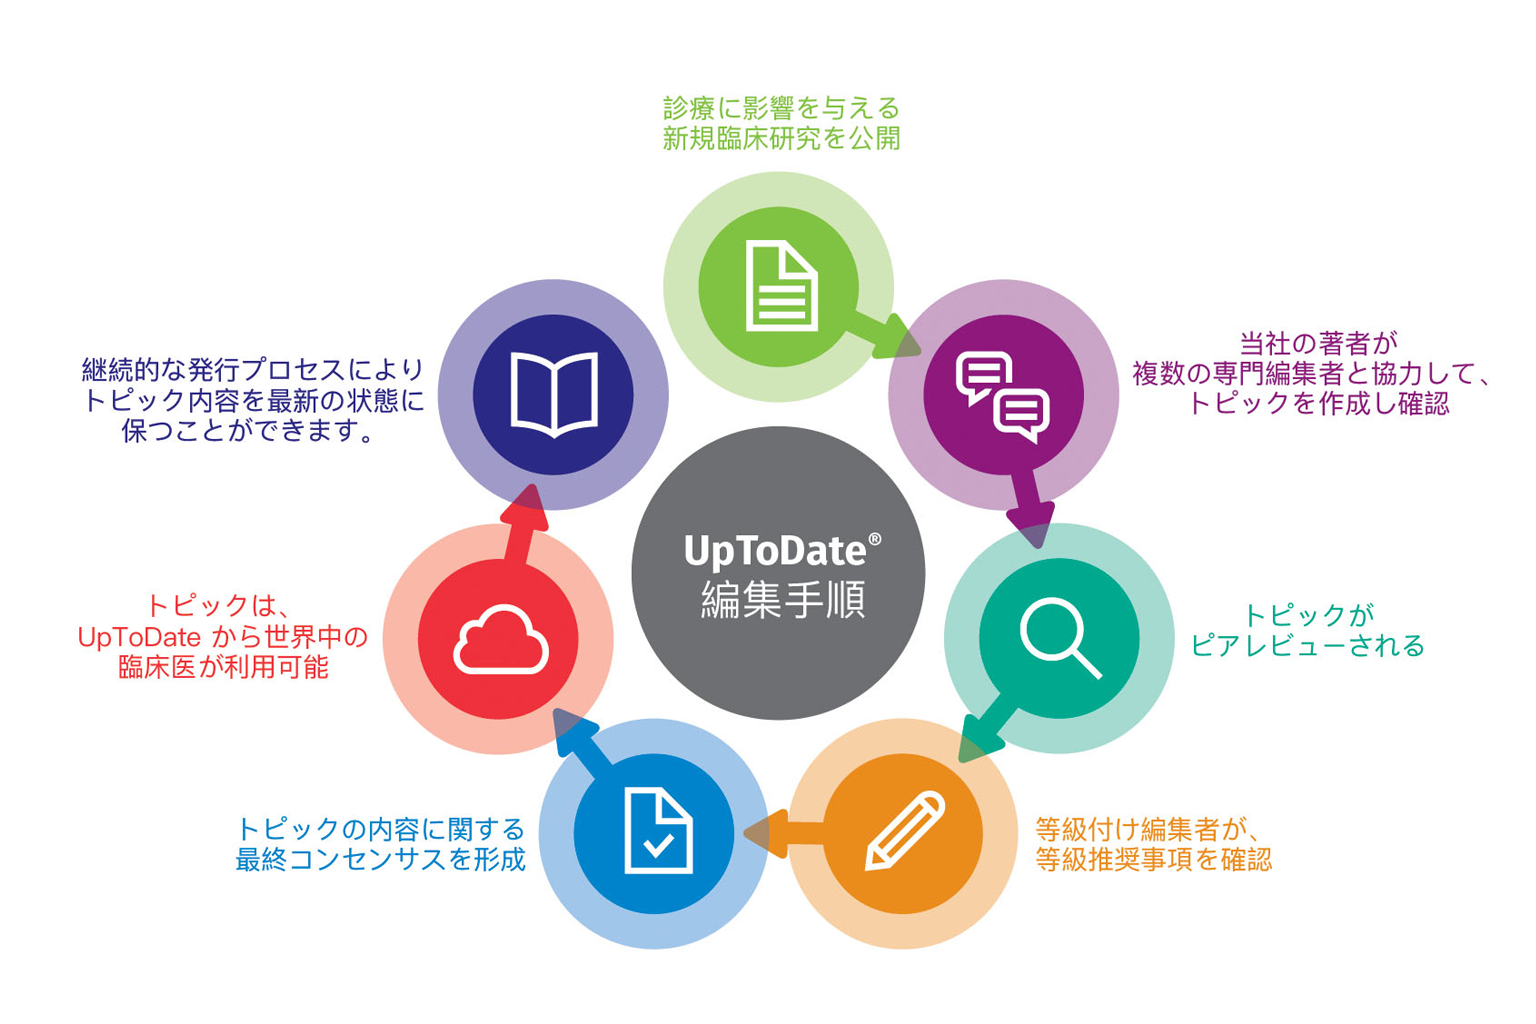 graphic of UpToDate editorial process in Japanese